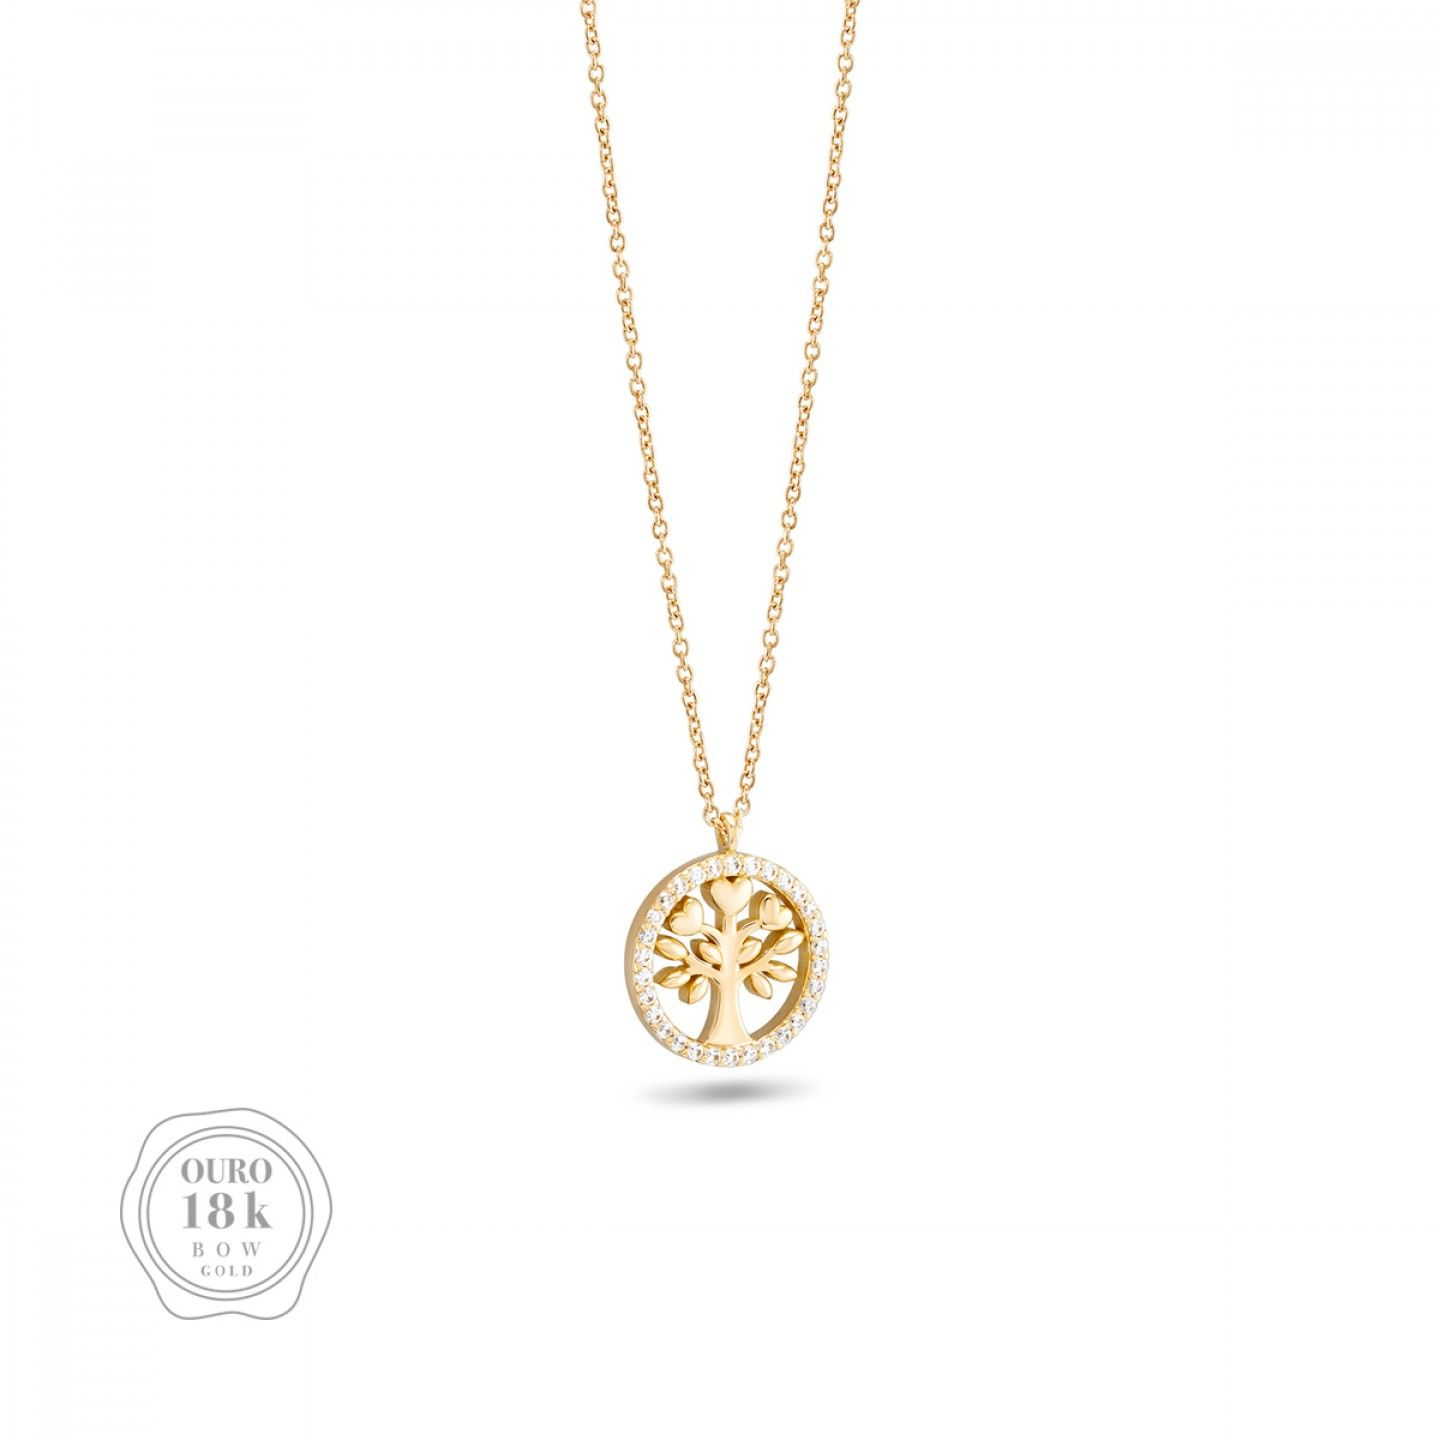 COLAR BOW GOLD TREE OF LIFE